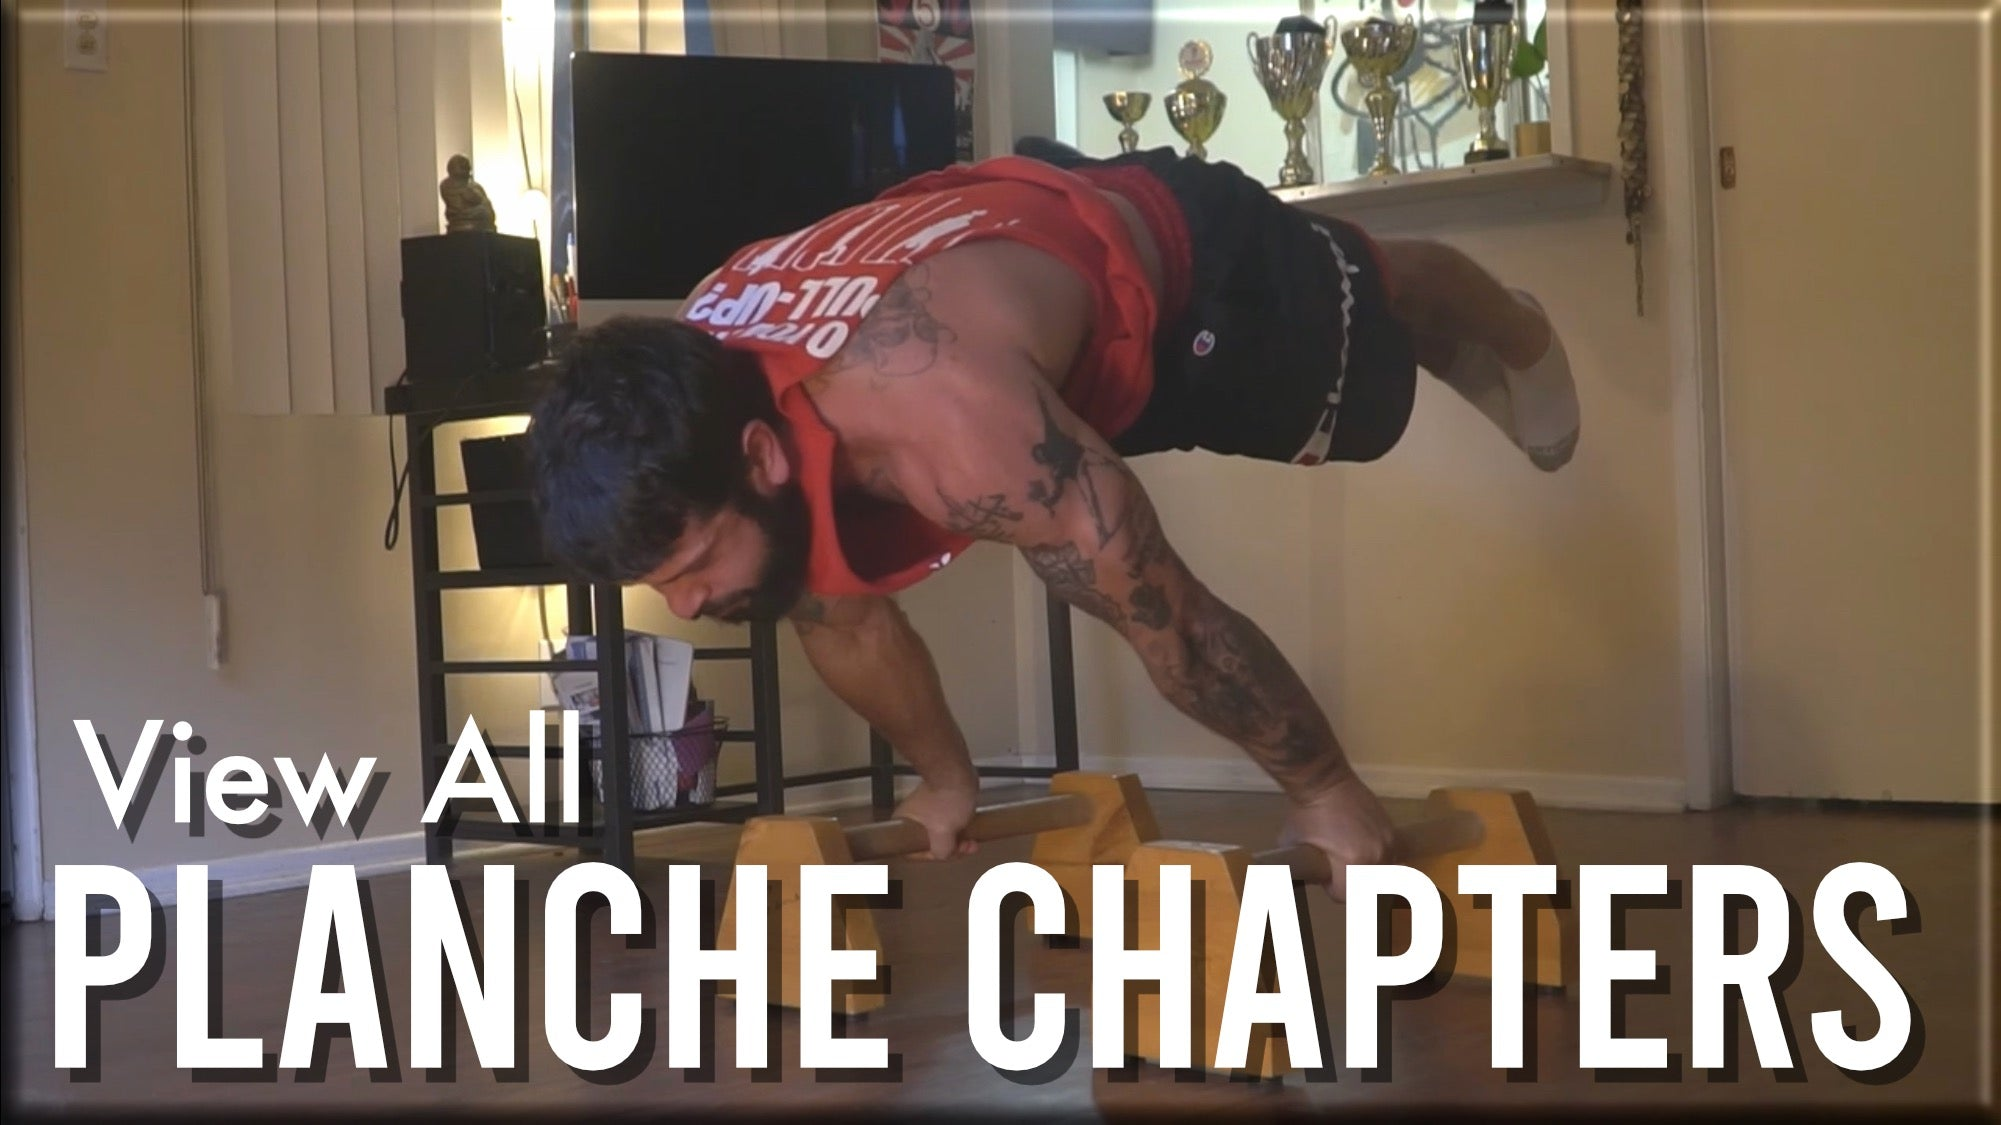 View All Planche Chapters